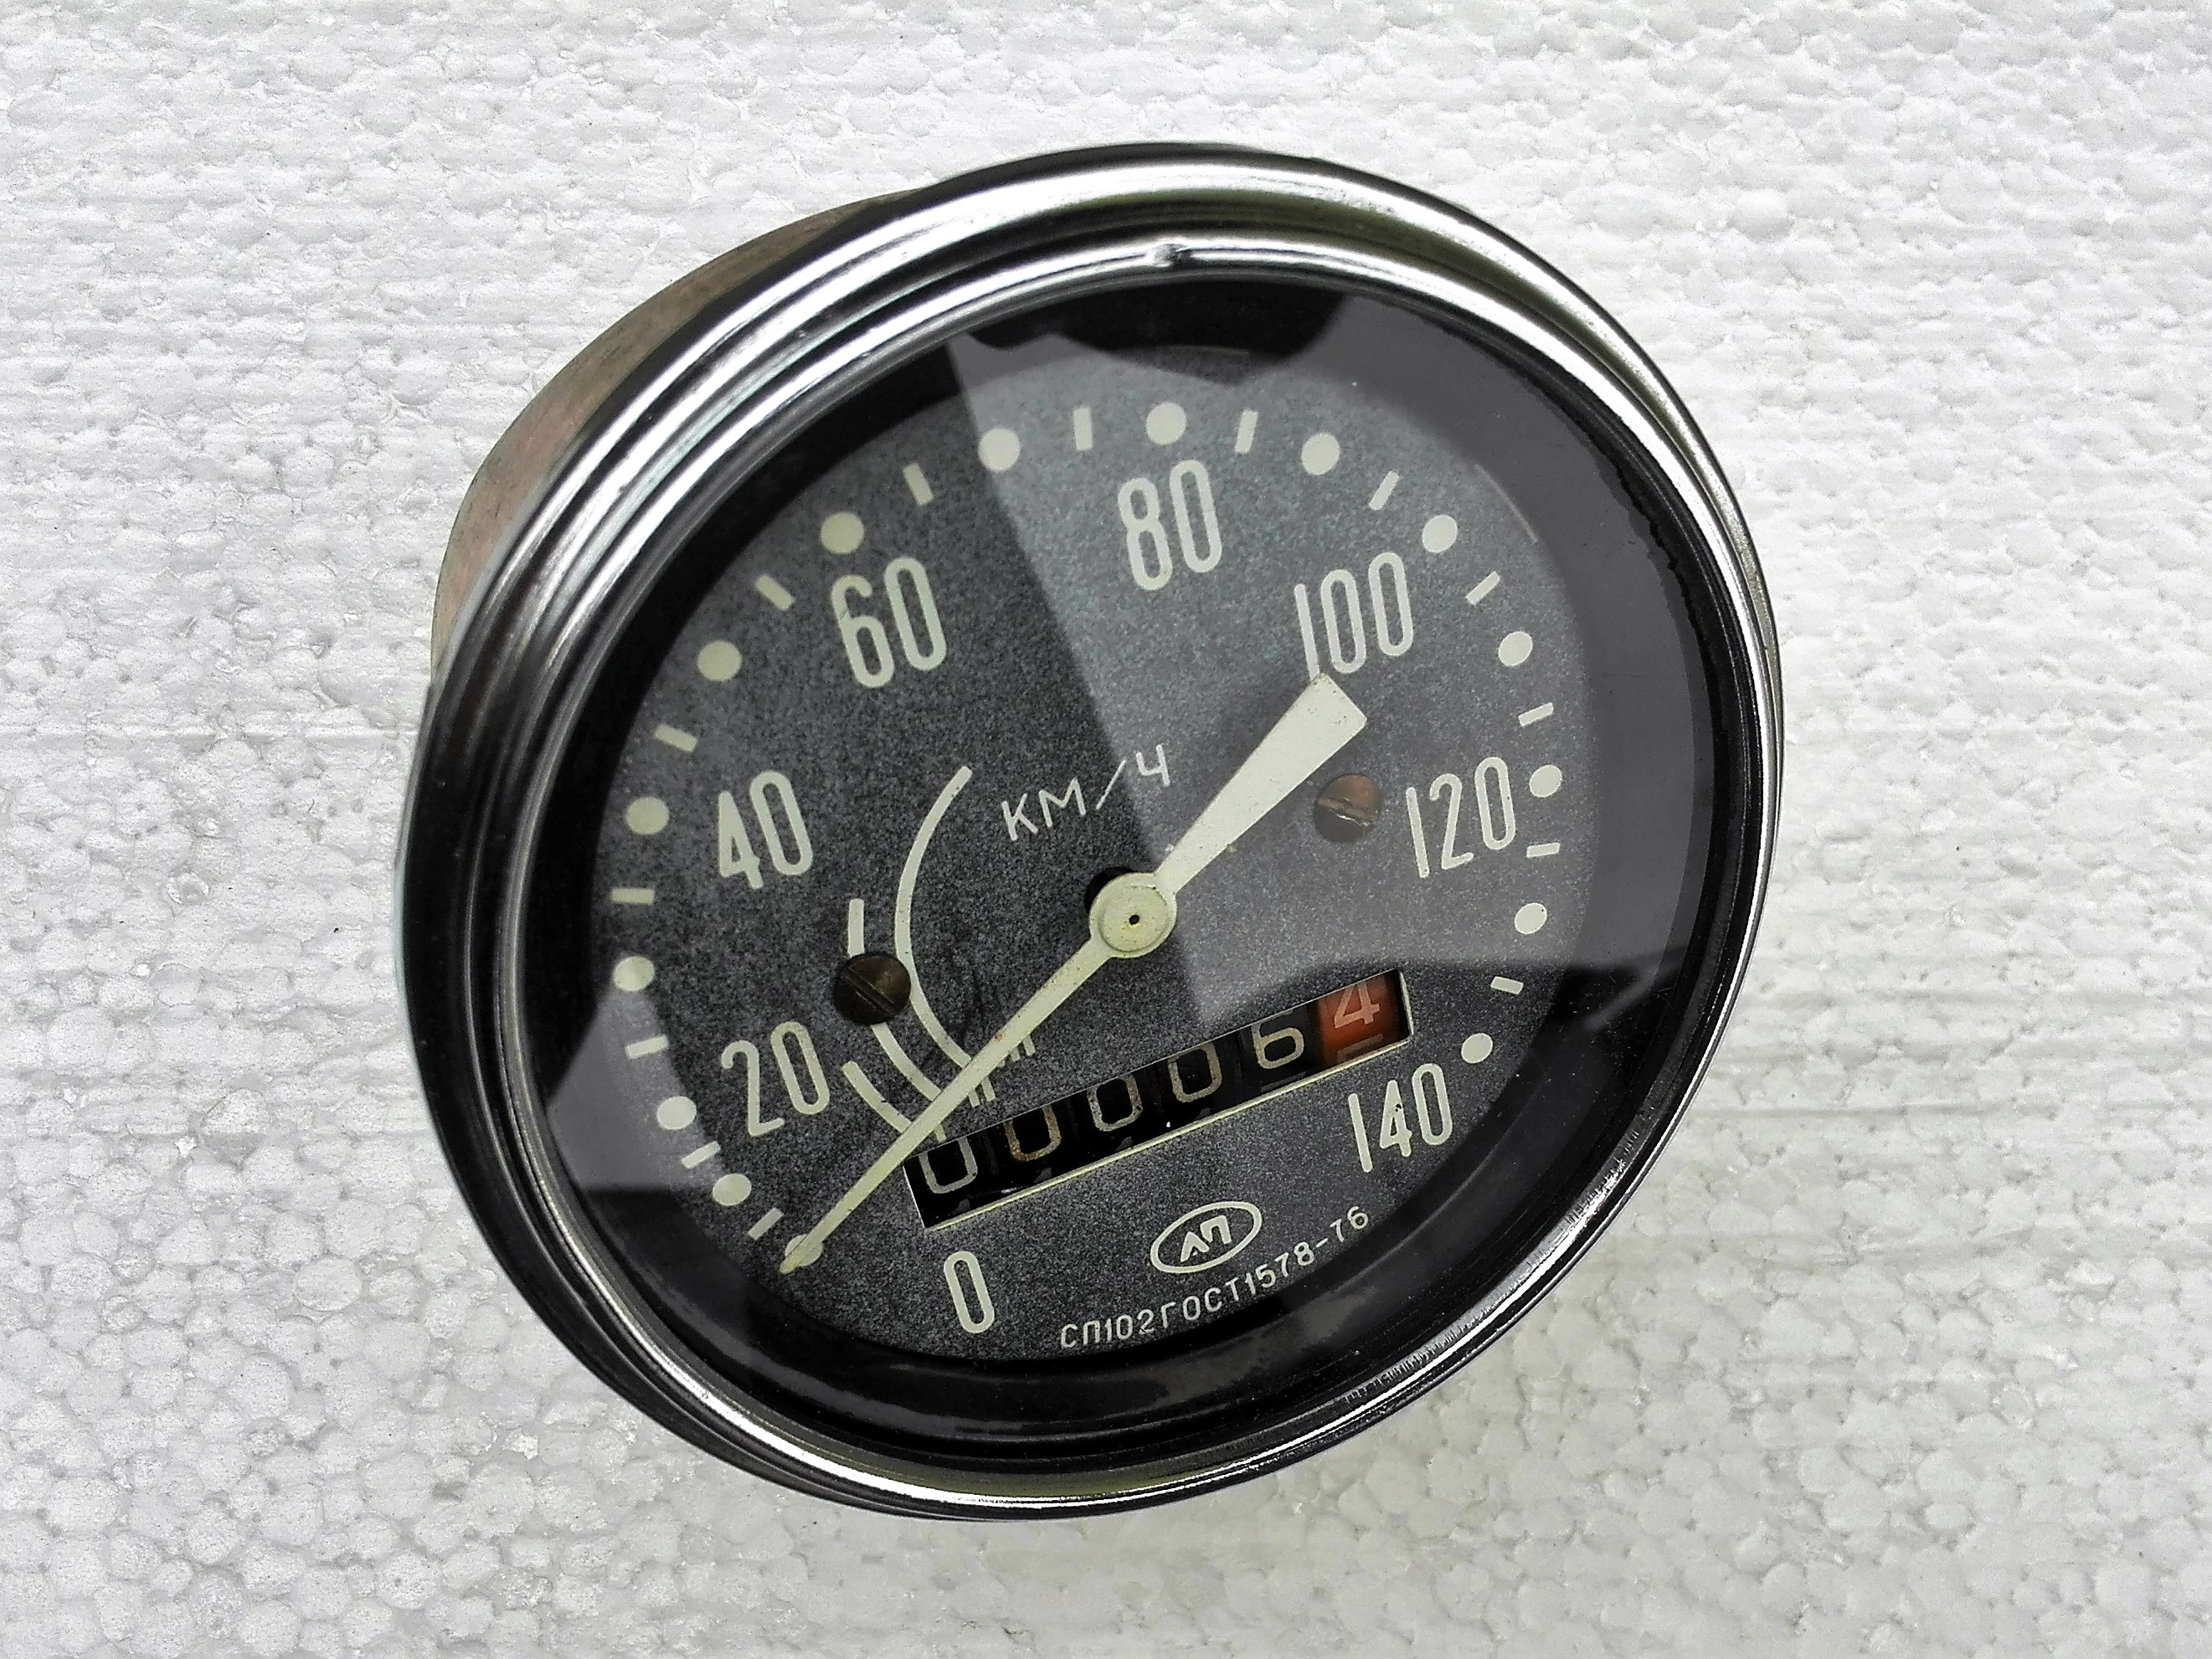 dnepr tacho speedometer compteur de vitesse velocimetro ebay. Black Bedroom Furniture Sets. Home Design Ideas